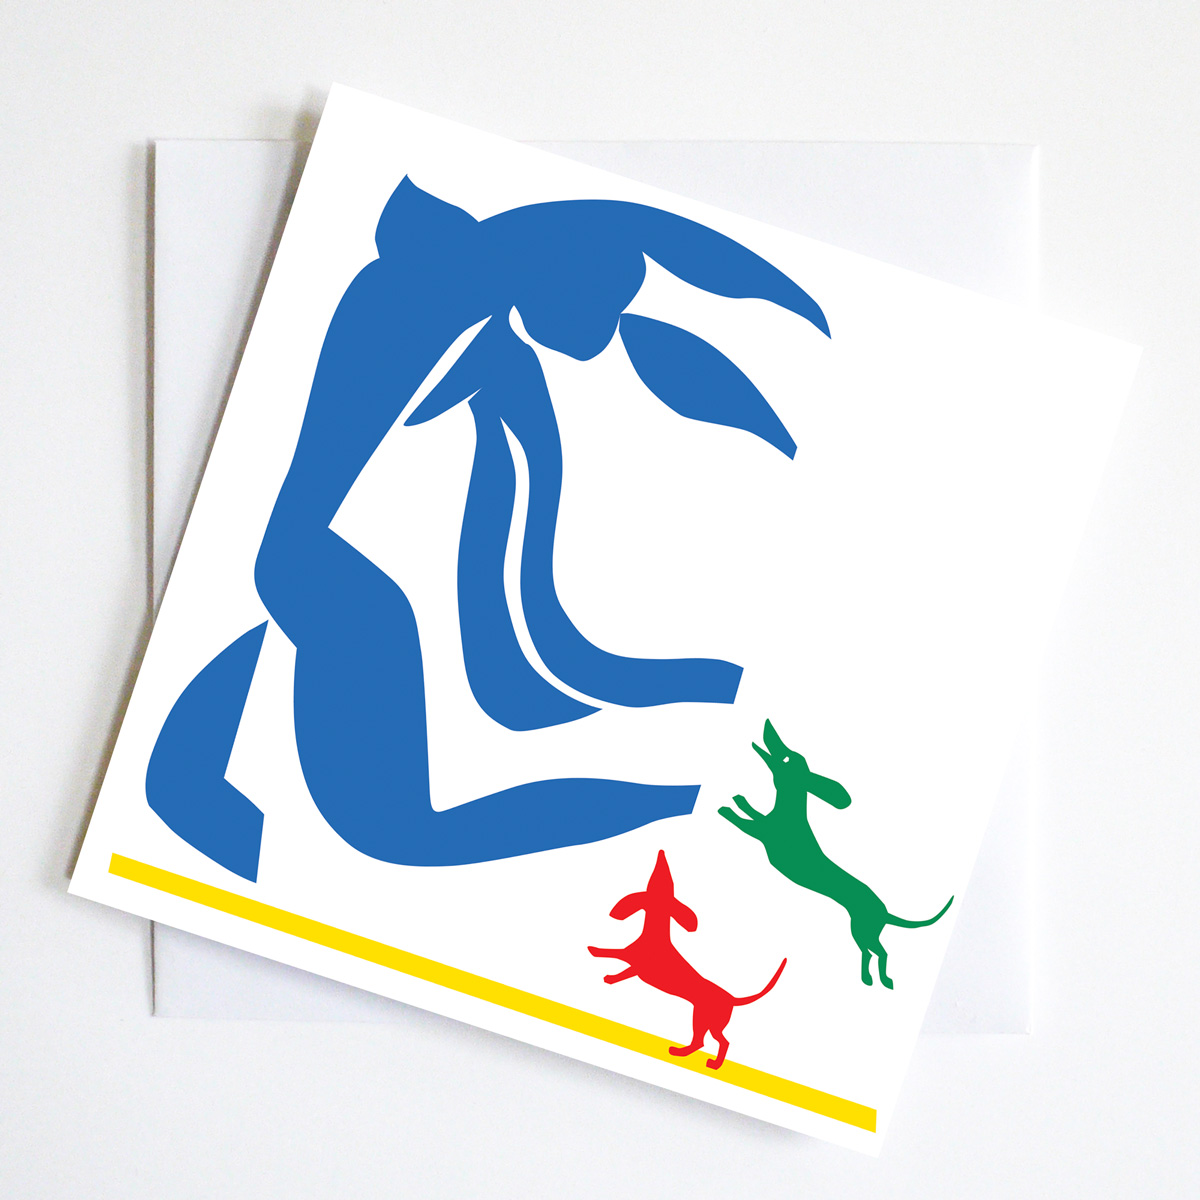 Gift Card showing two dachshunds literally After Matisse or rather chasing his blue nude